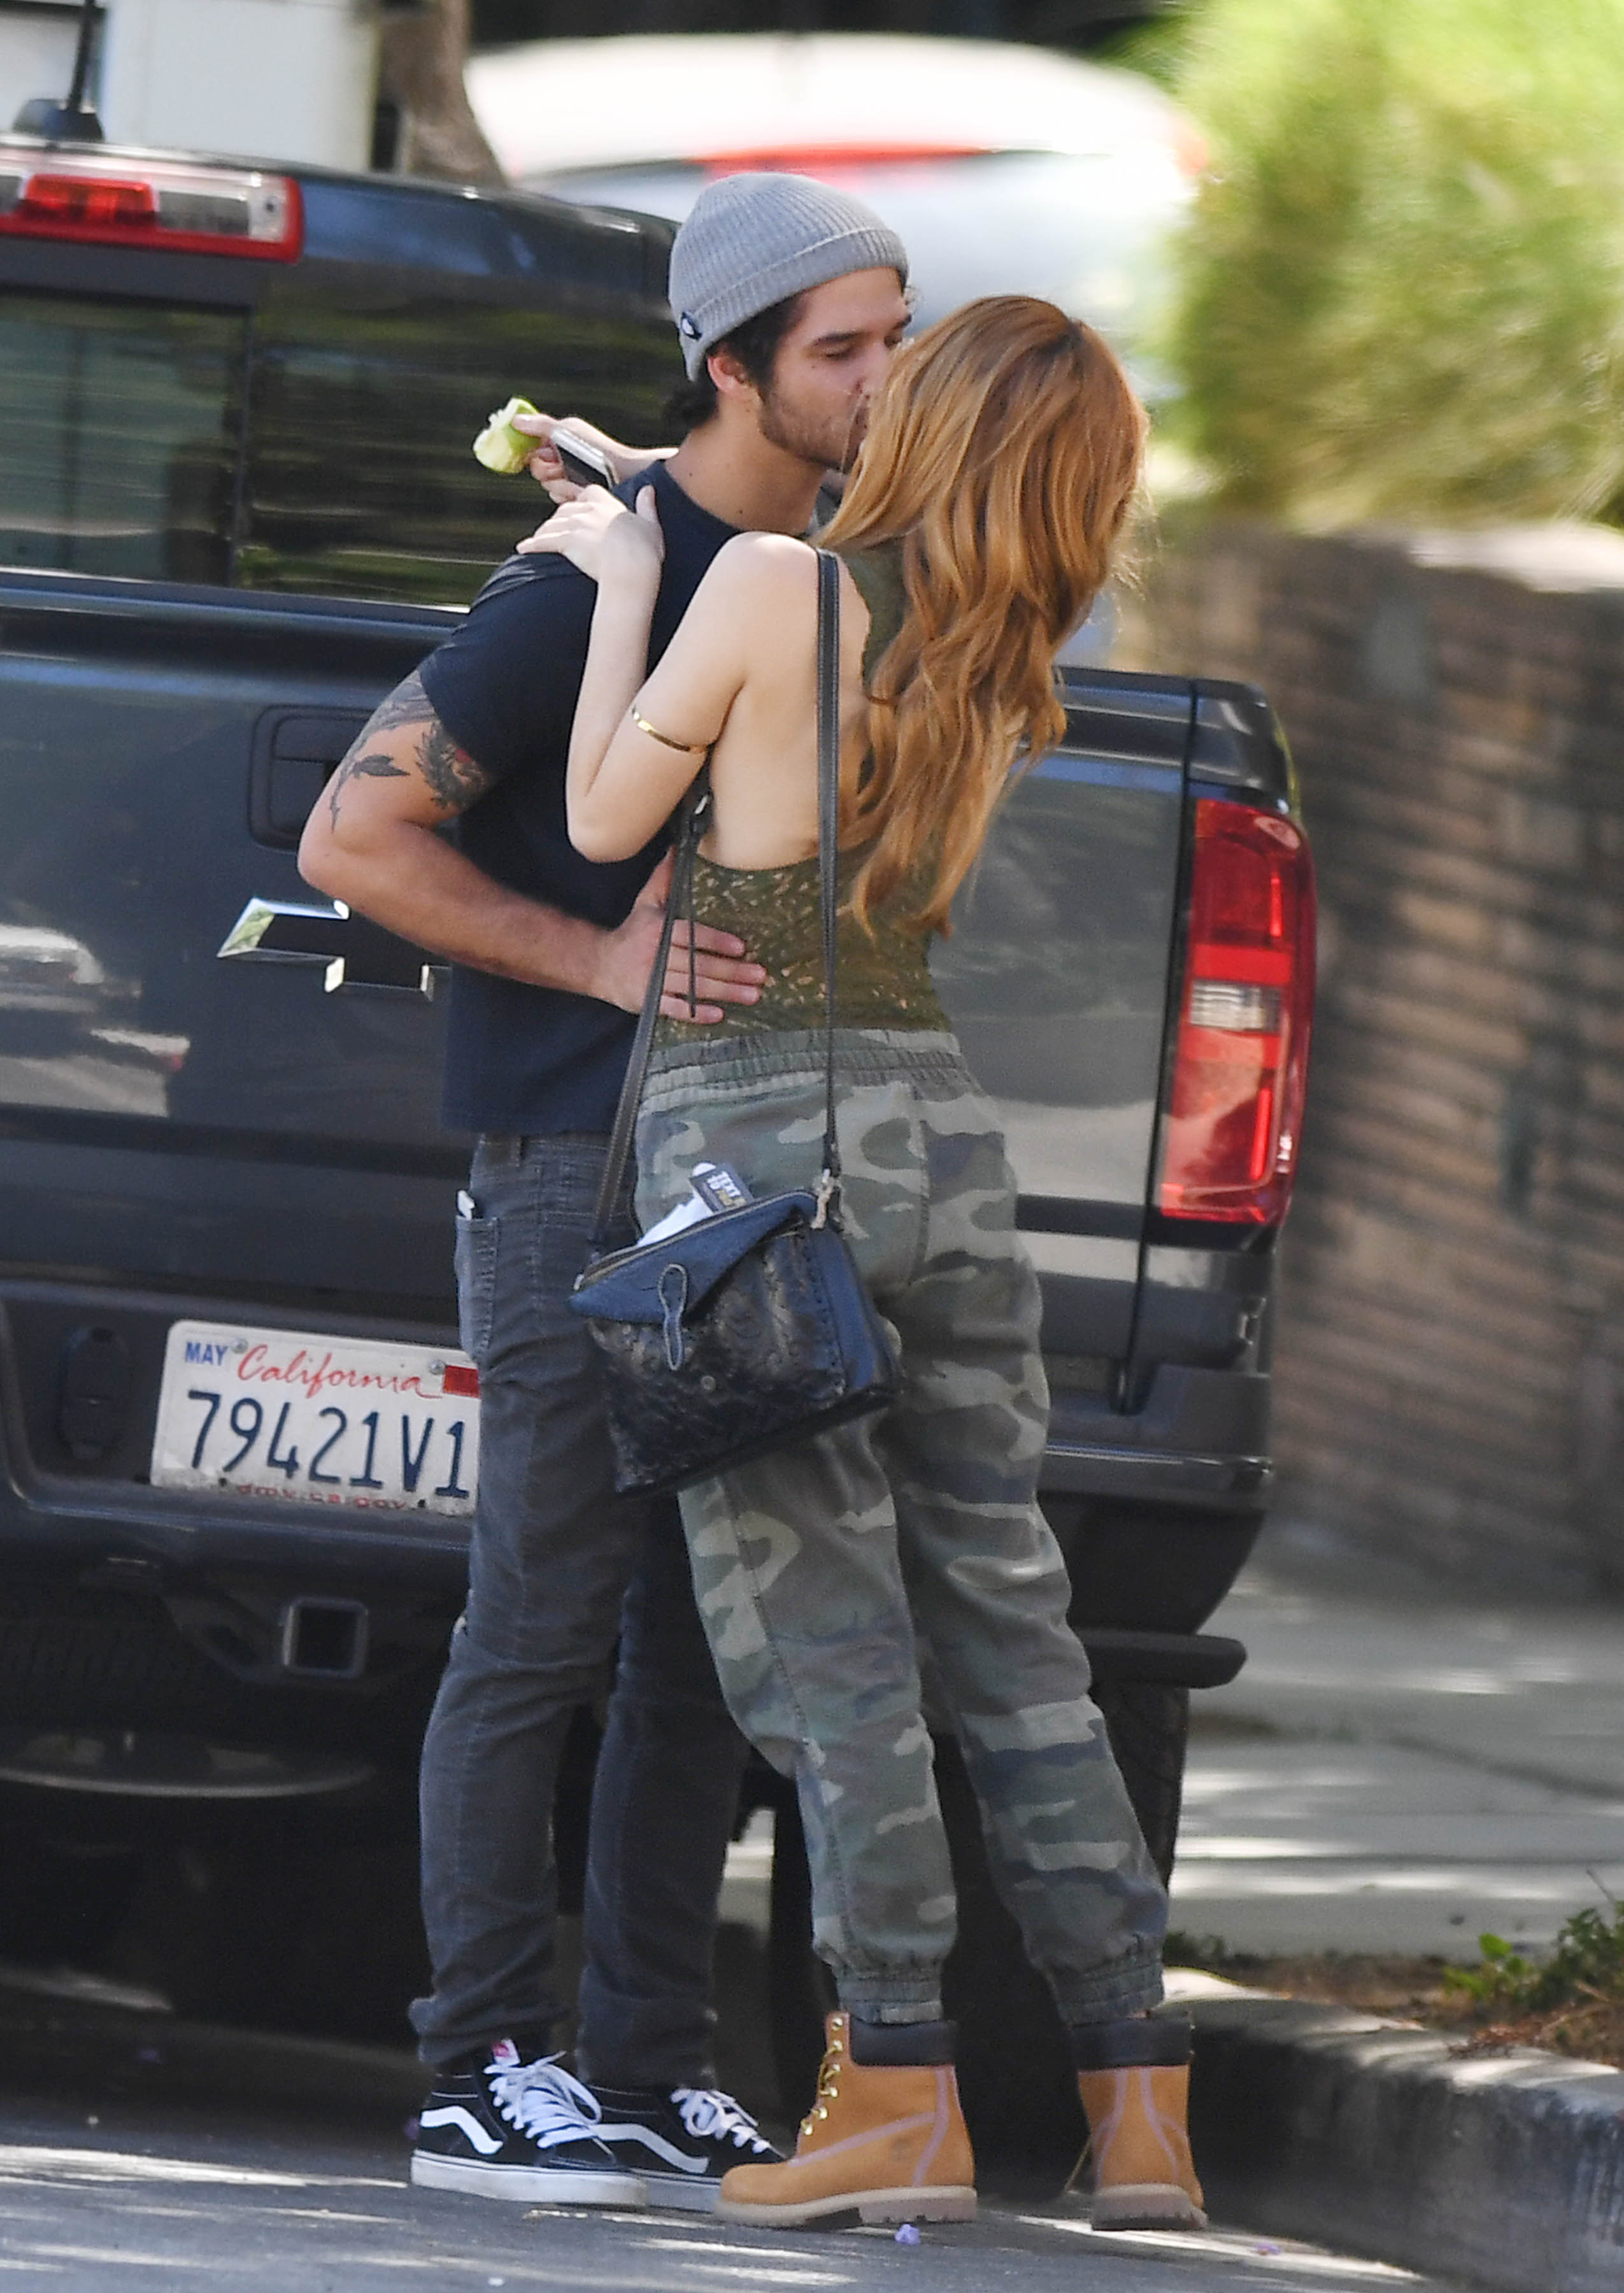 Hacked Bella Thorne nudes (85 foto and video), Topless, Hot, Instagram, braless 2006